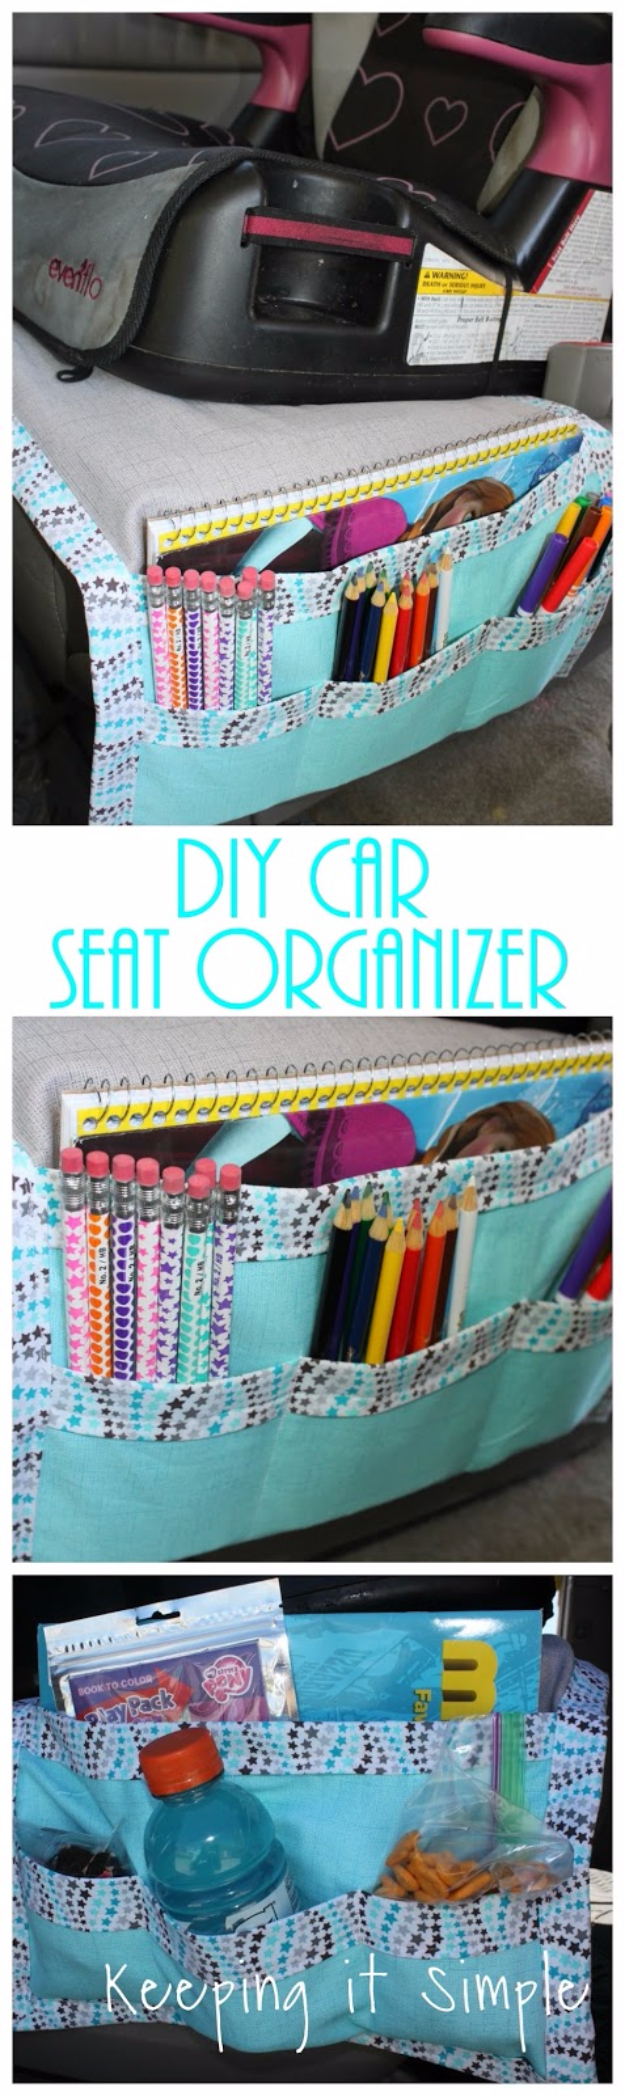 30 Diy Ideas To Make For The Car Or Truck